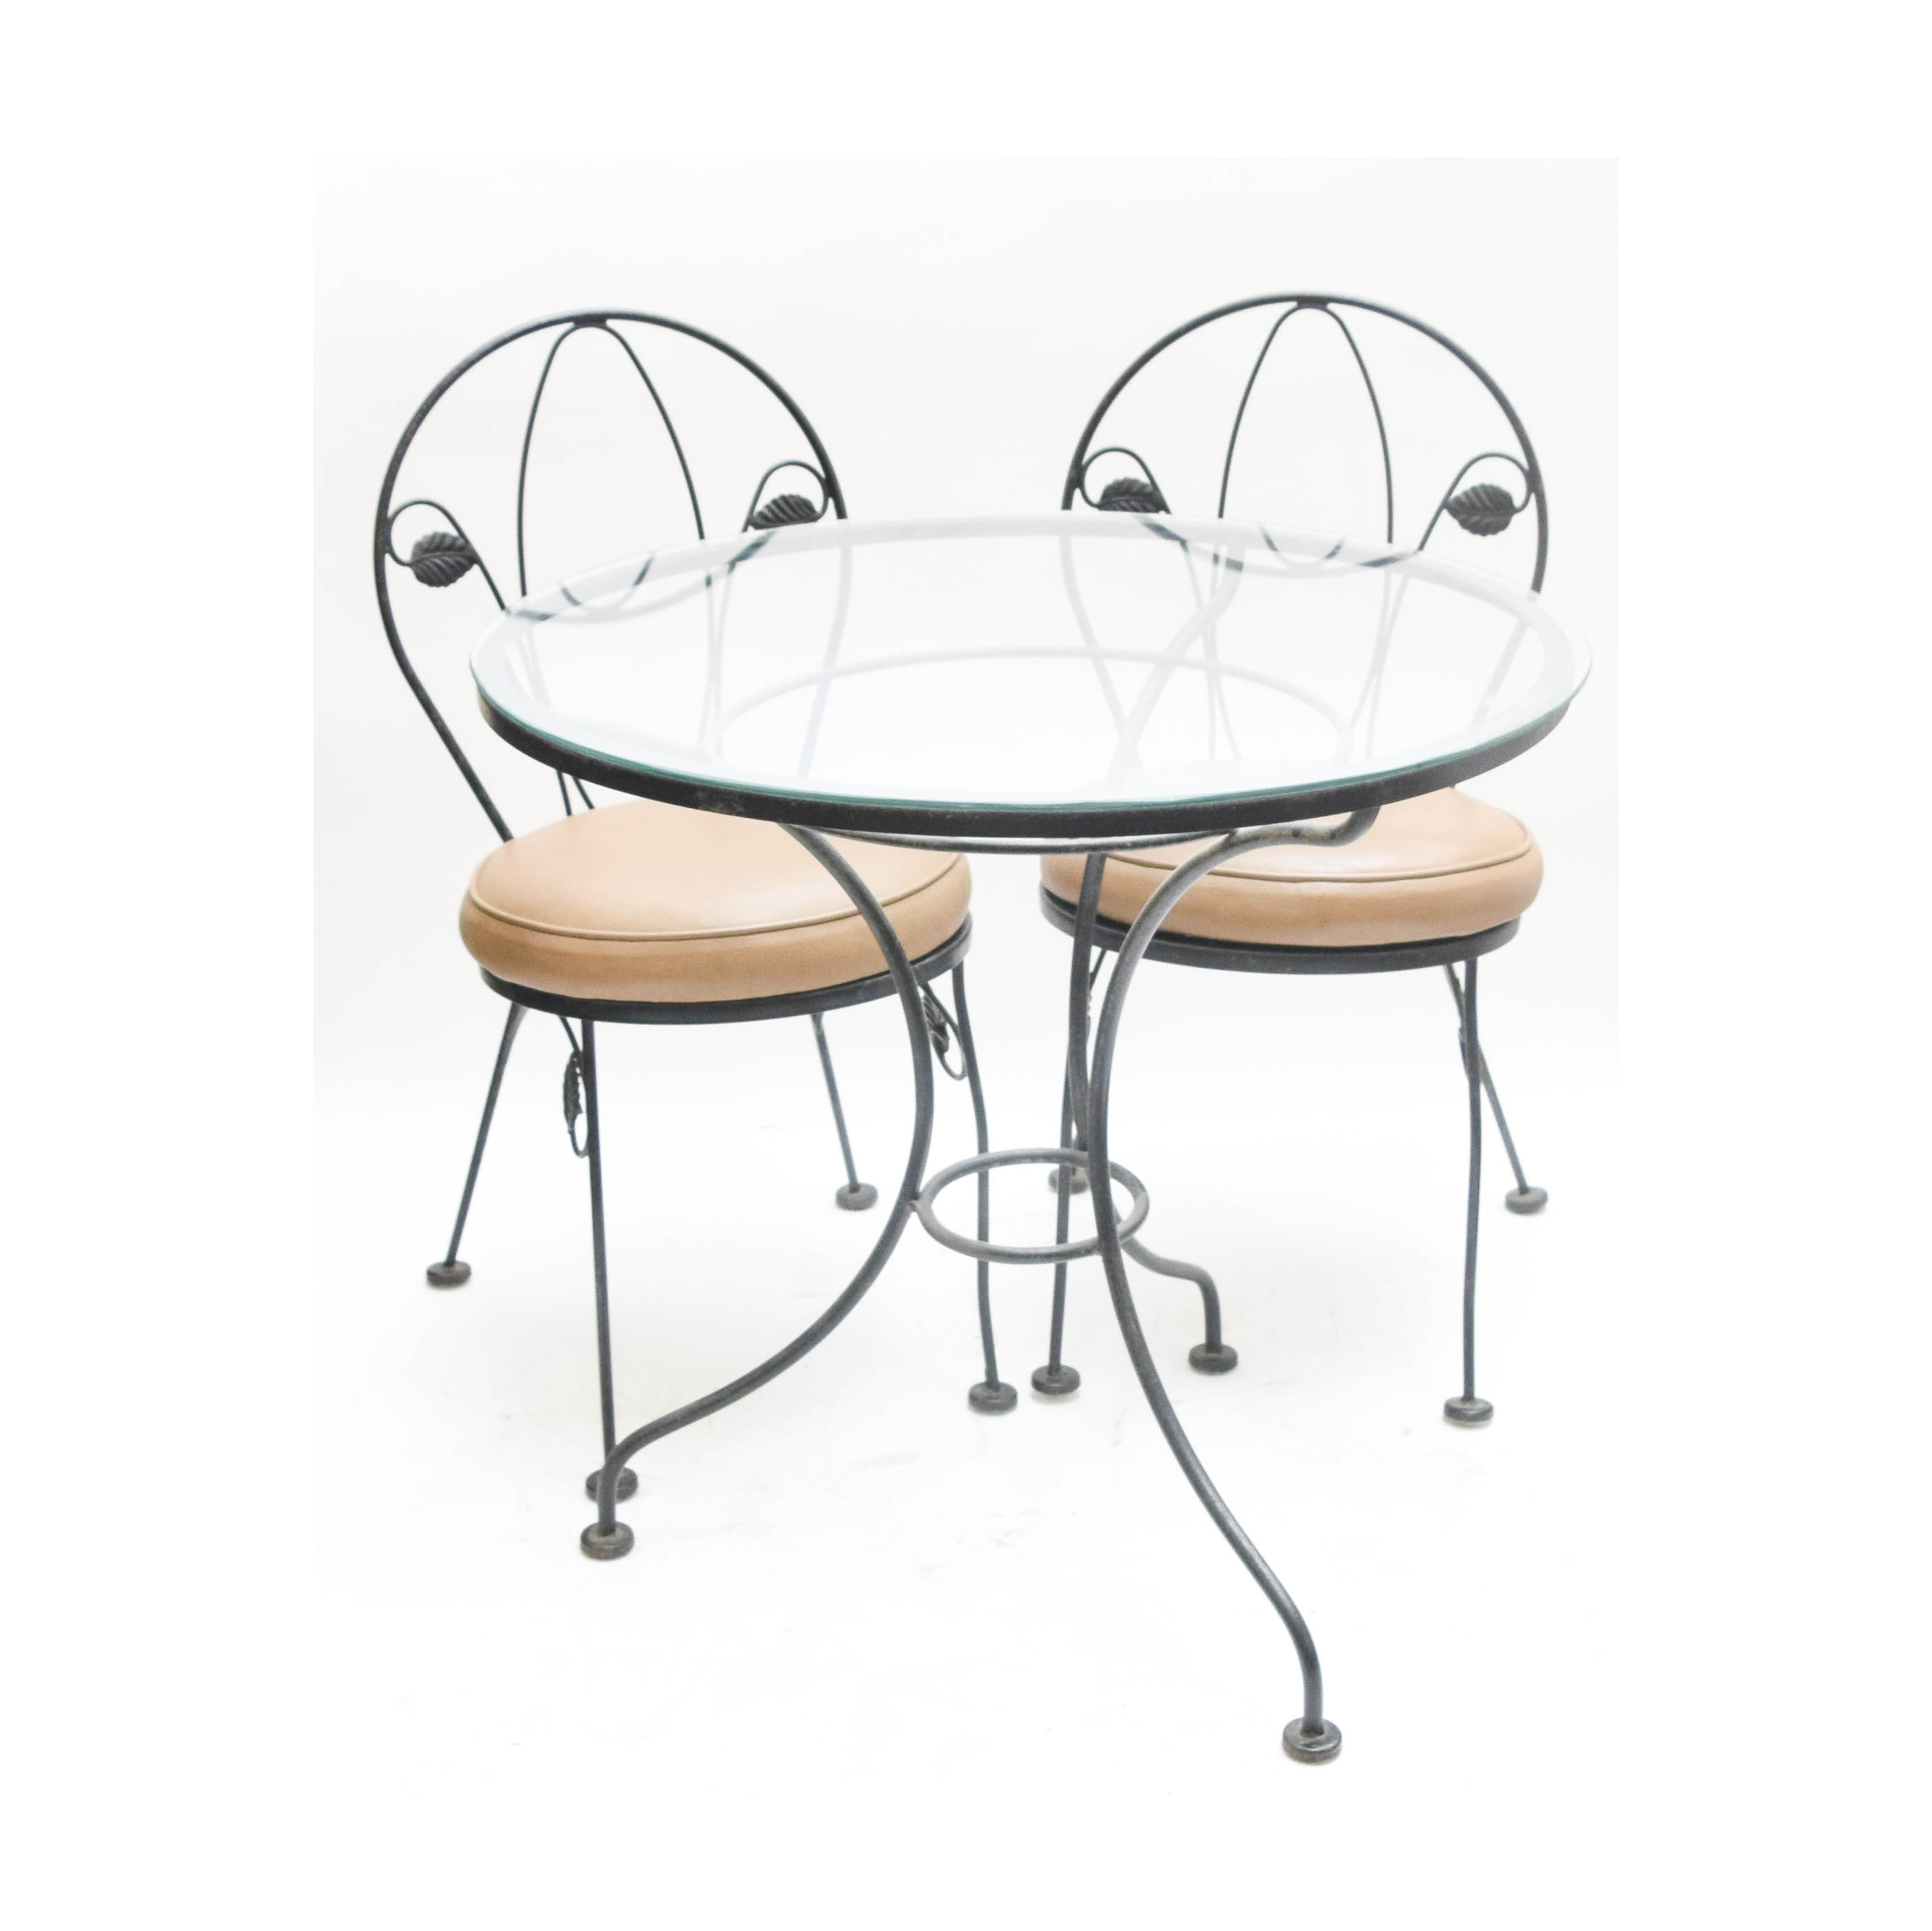 Wrought Iron and Glass Bistro Set